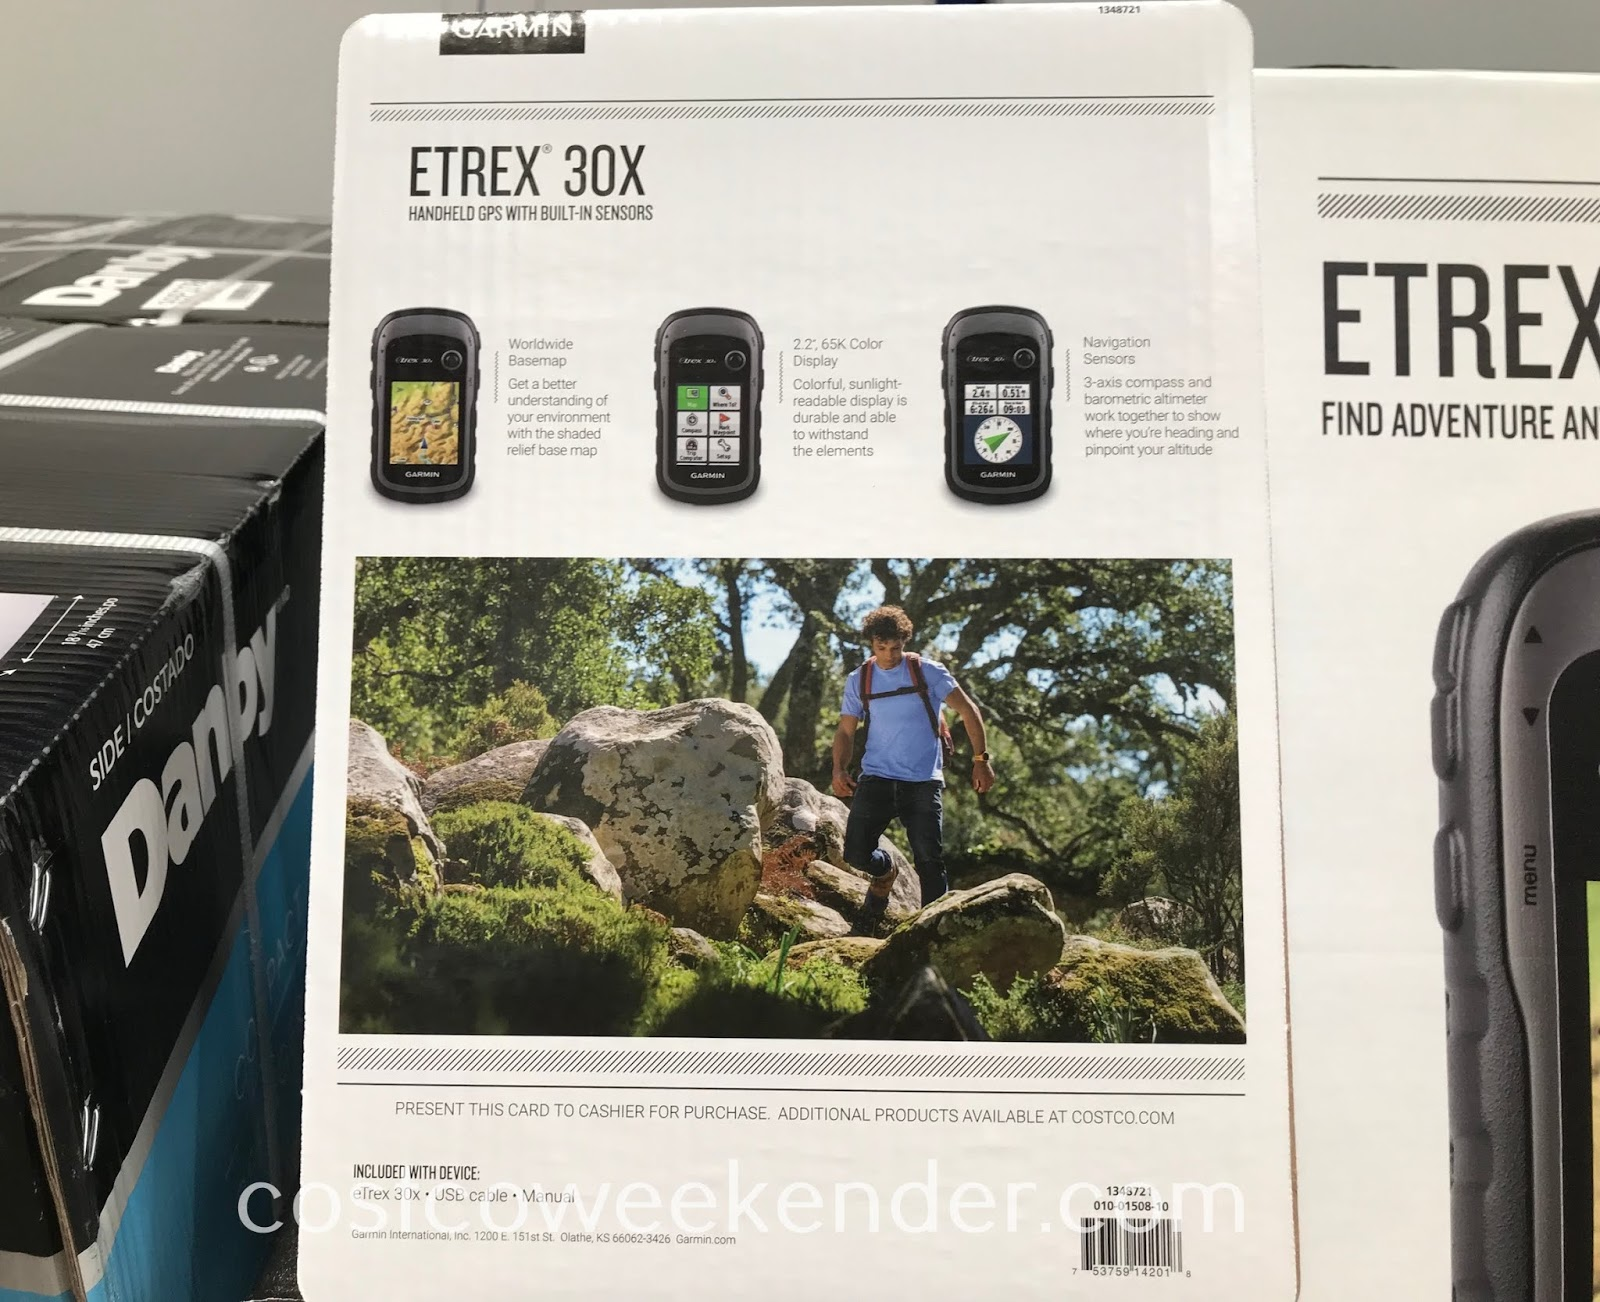 Costco 1348721 - Garmin eTrex 30x Handheld GPS: great for any backpacker or adventurer